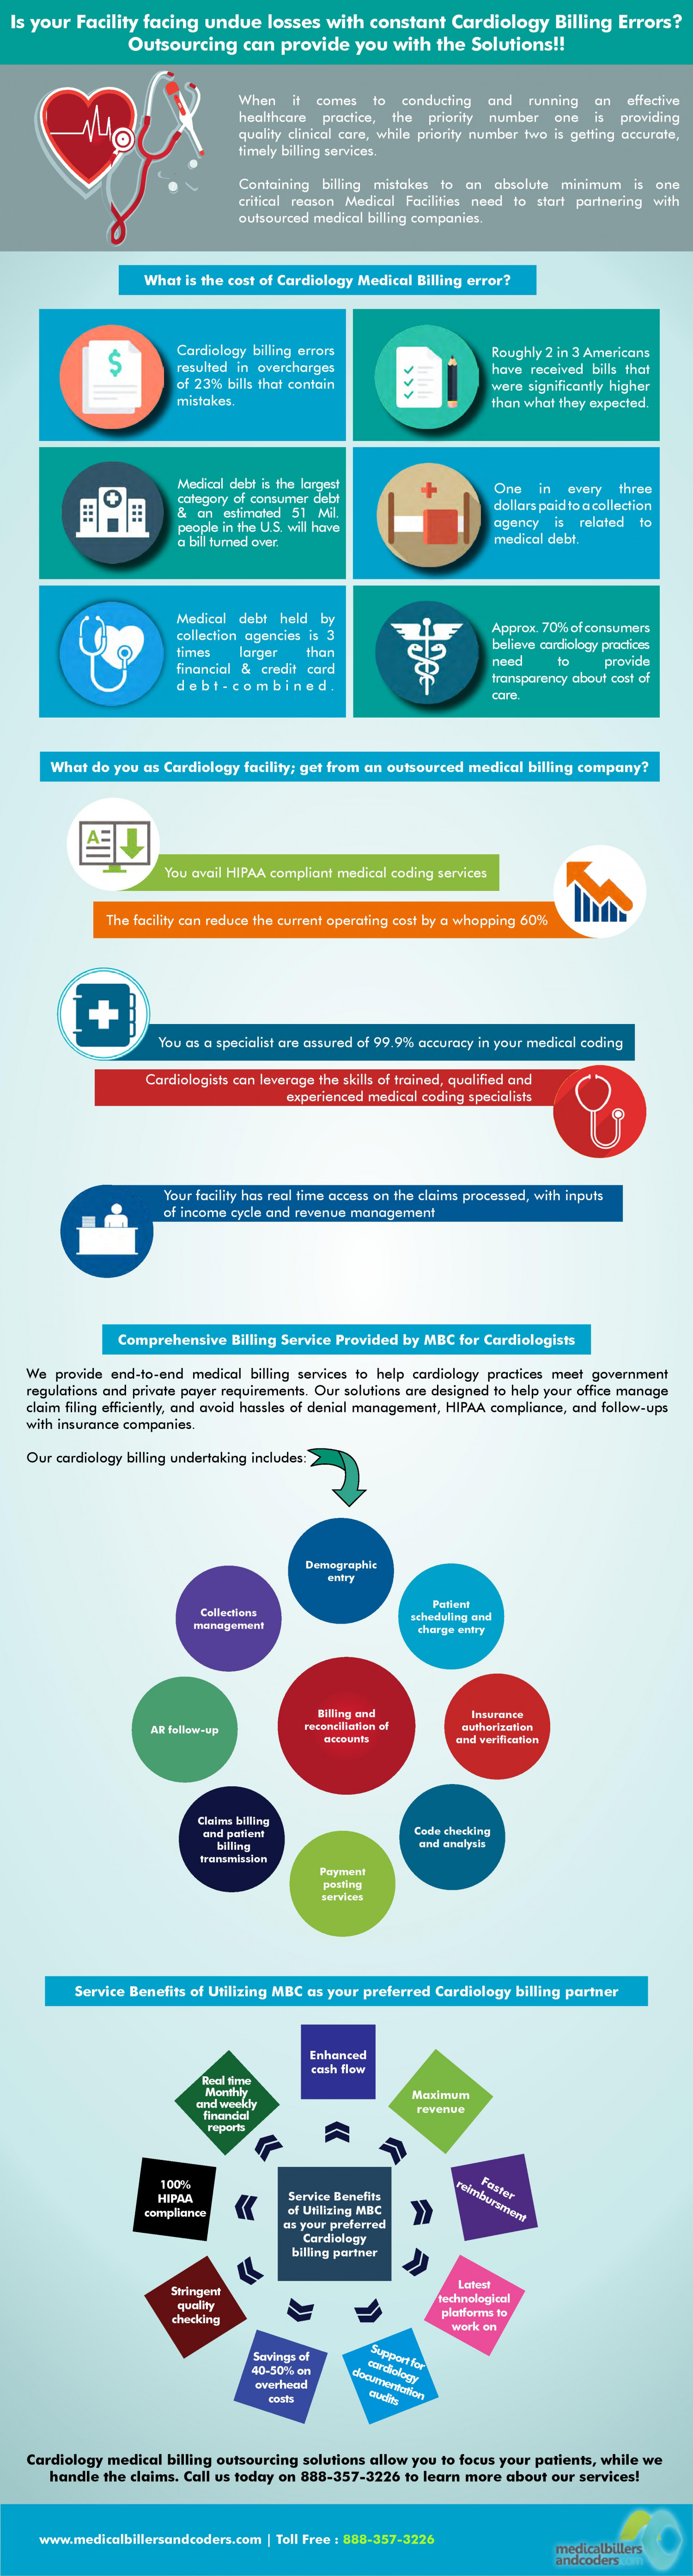 What is The Cost Of Cardiology Medical Billing Error Infographic